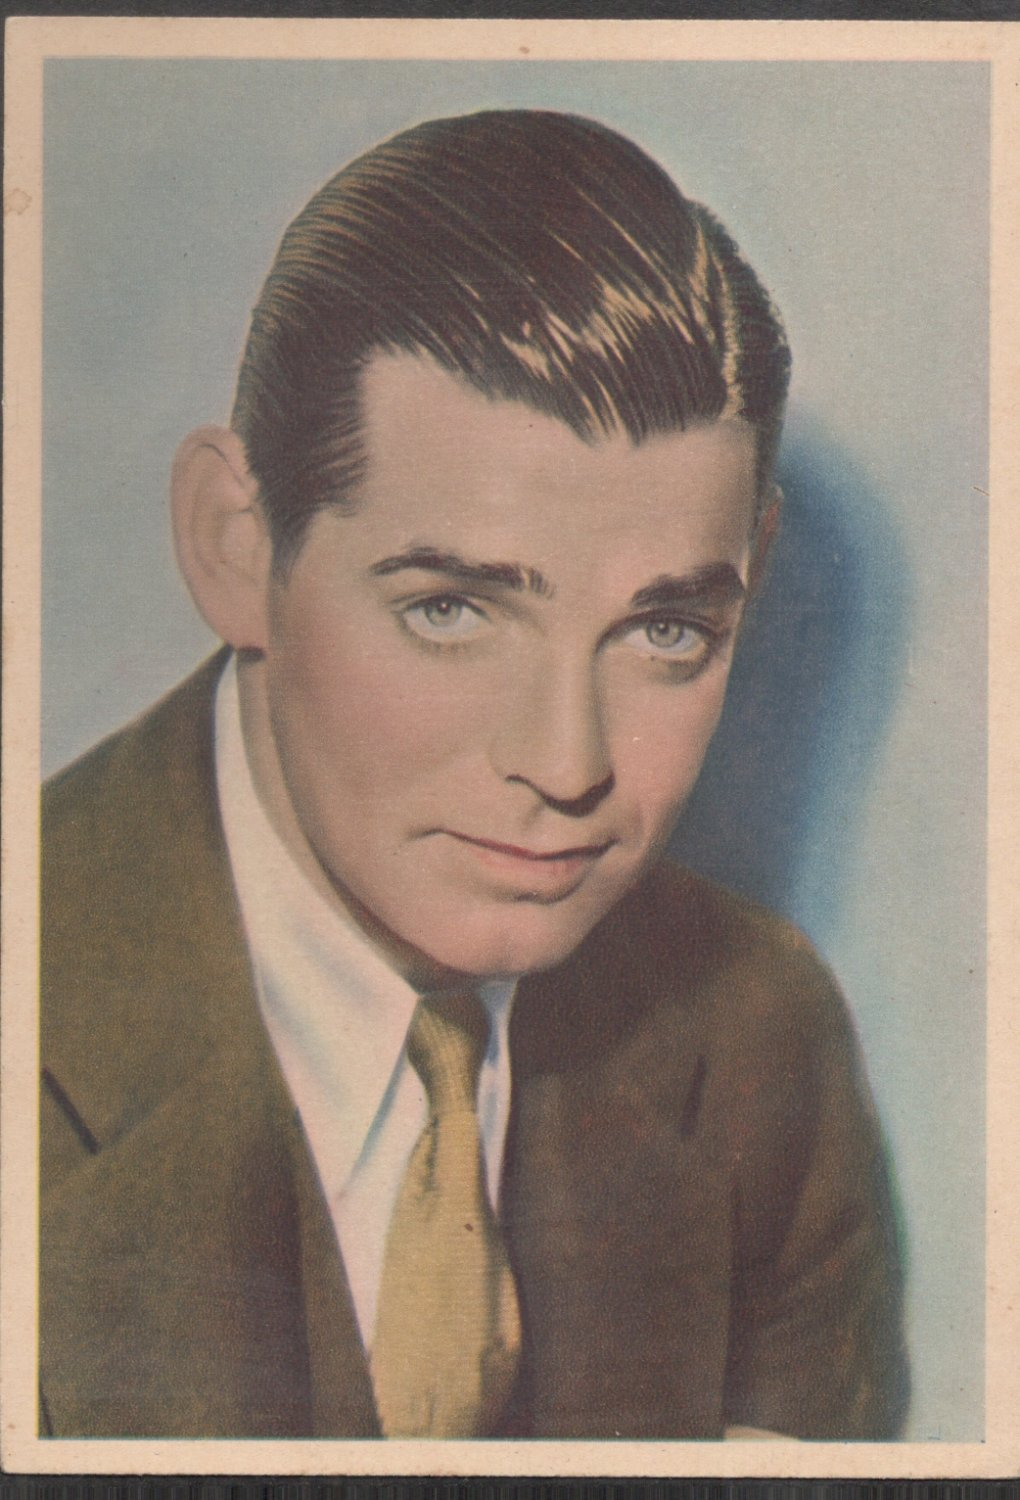 GODFREY PHILLIPS Clark Gable MINT CARD